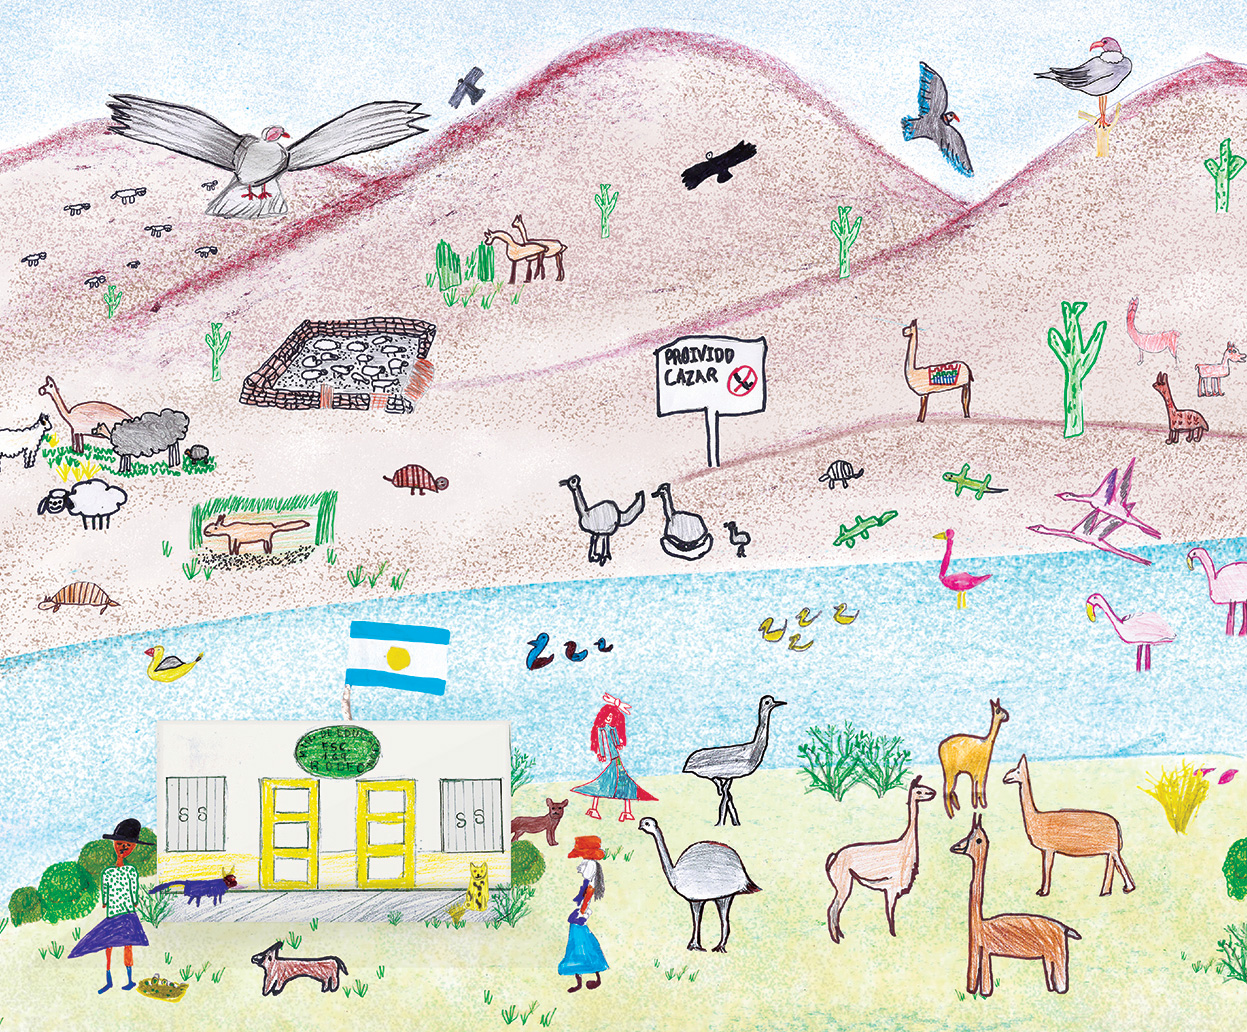 Biodiversity collage made by children of 3 schools from the Pozuelos Man and Biosphere Reserve in Jujuy. Photo by Mercedes Tregoning